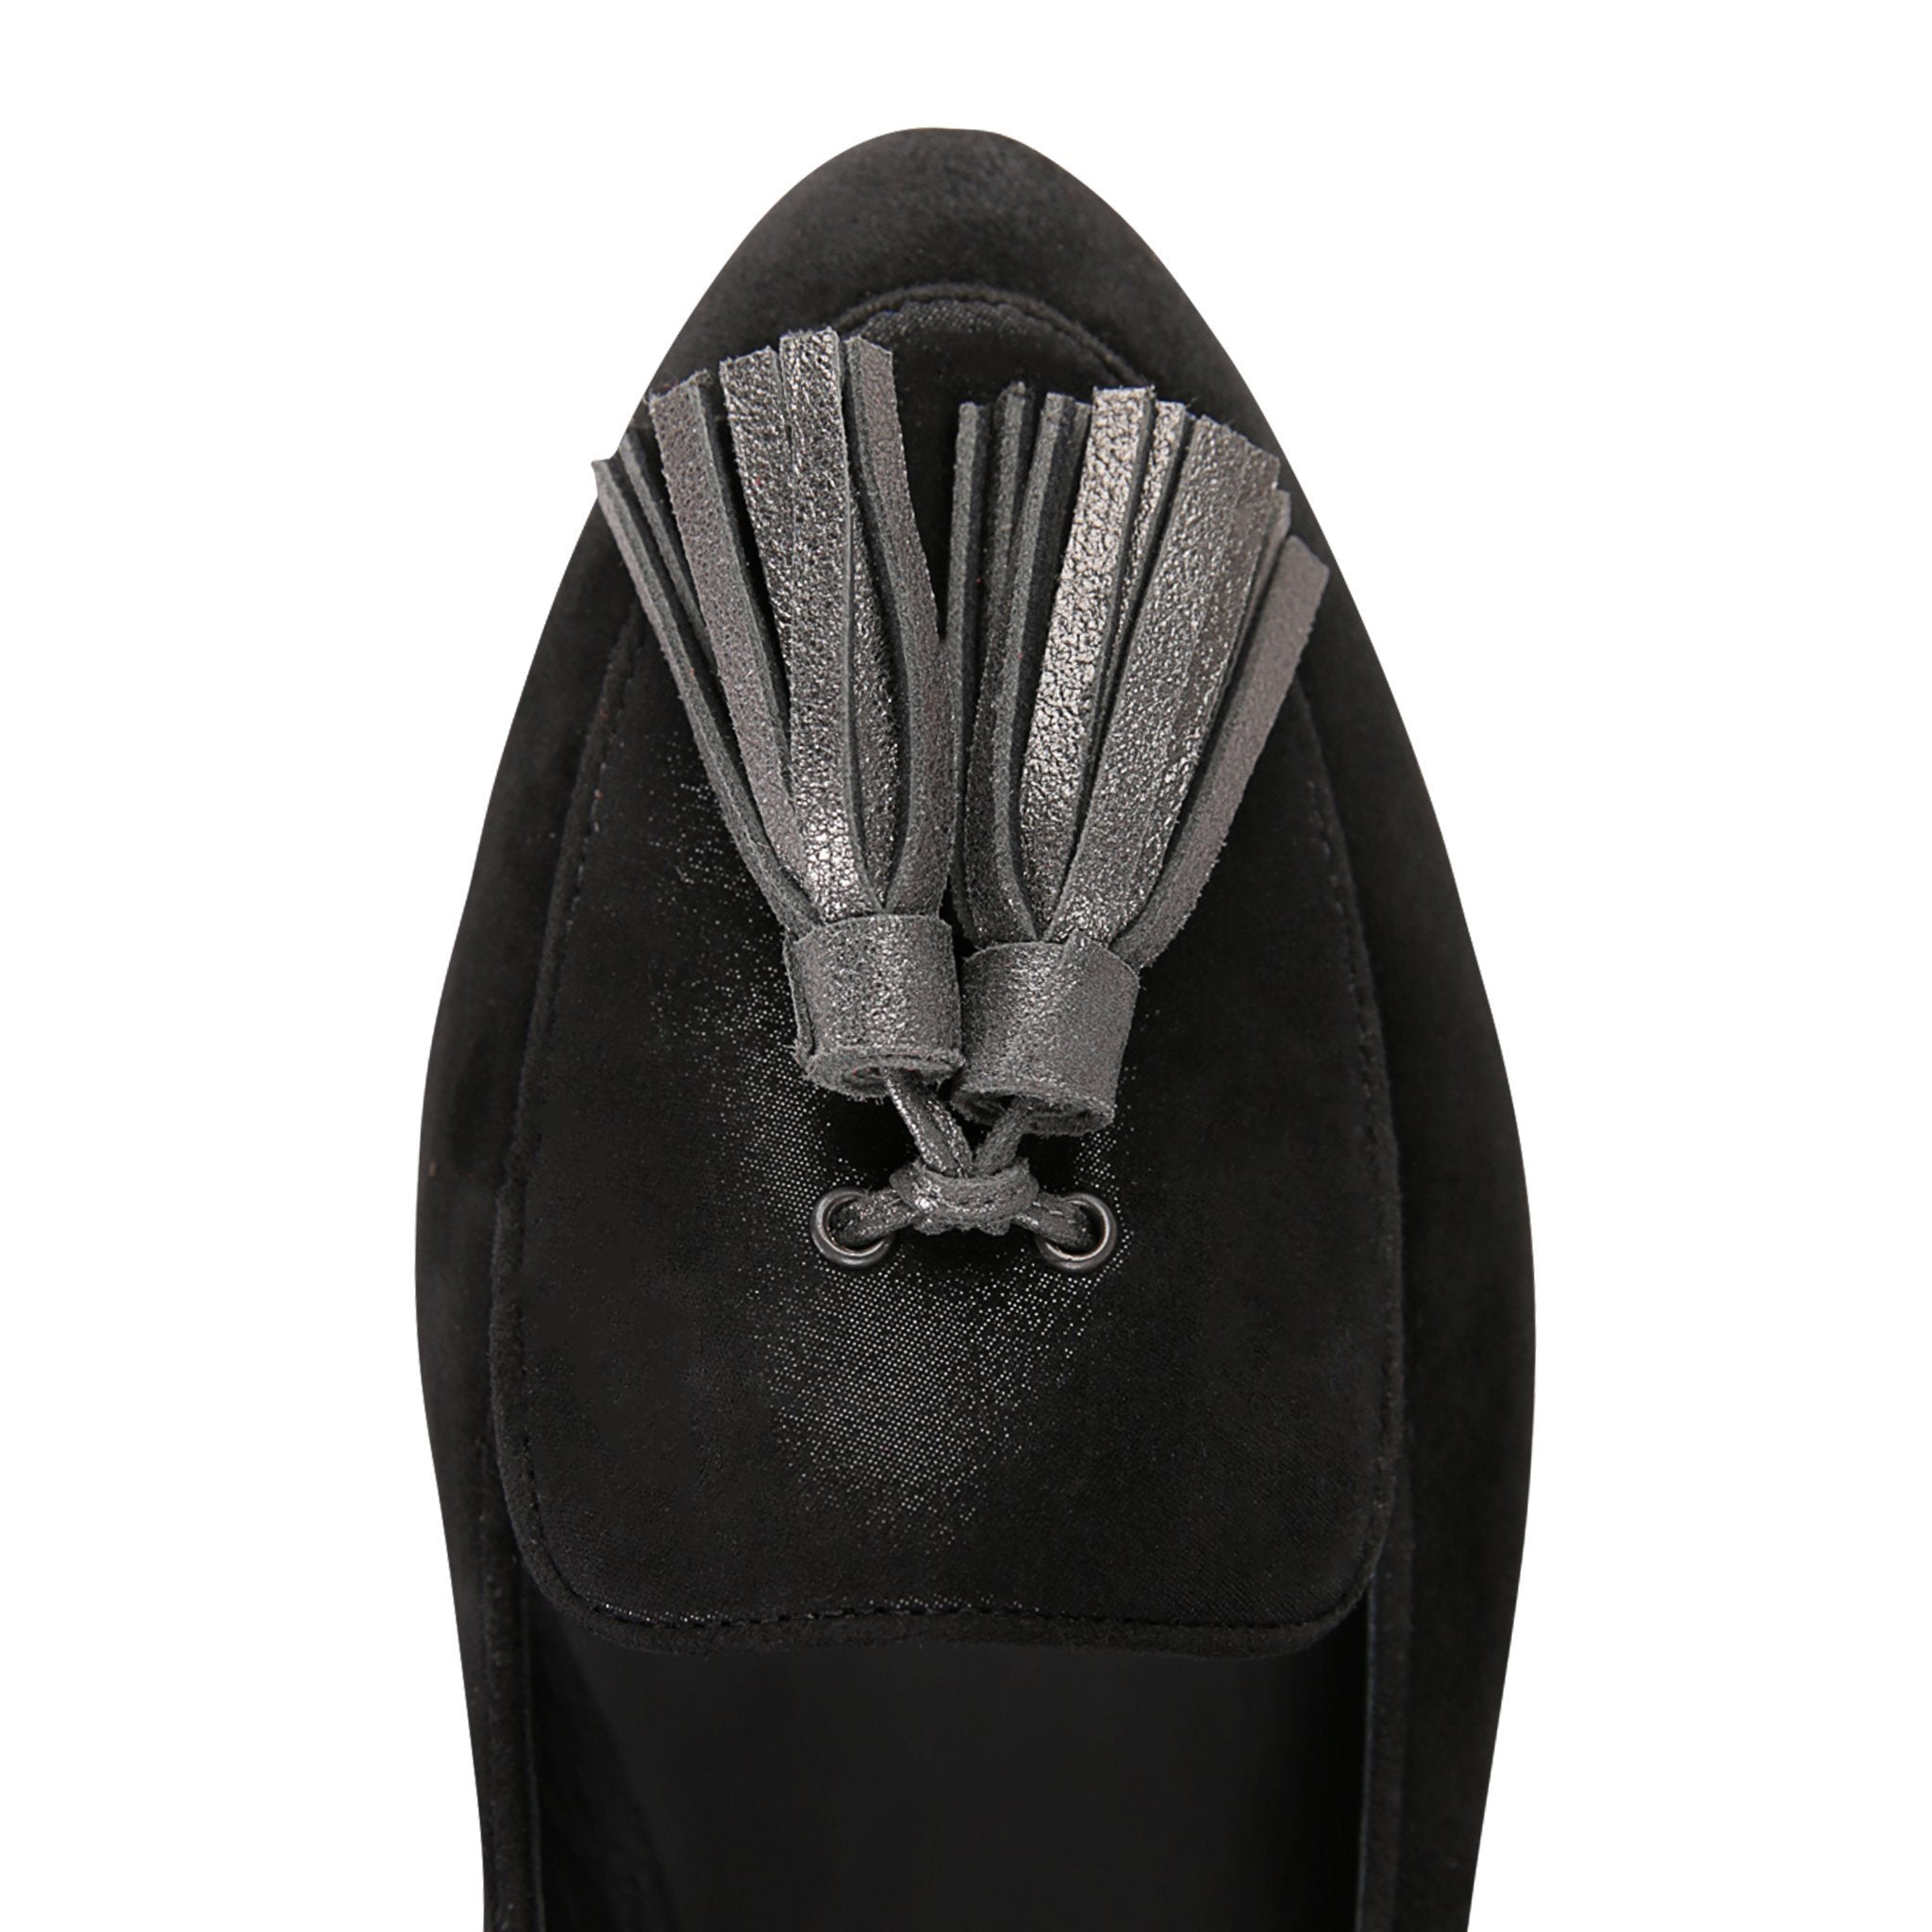 REGGIO - Velukid Nero + Hydra Nero + Burma Anthracite Tassel, VIAJIYU - Women's Hand Made Sustainable Luxury Shoes. Made in Italy. Made to Order.